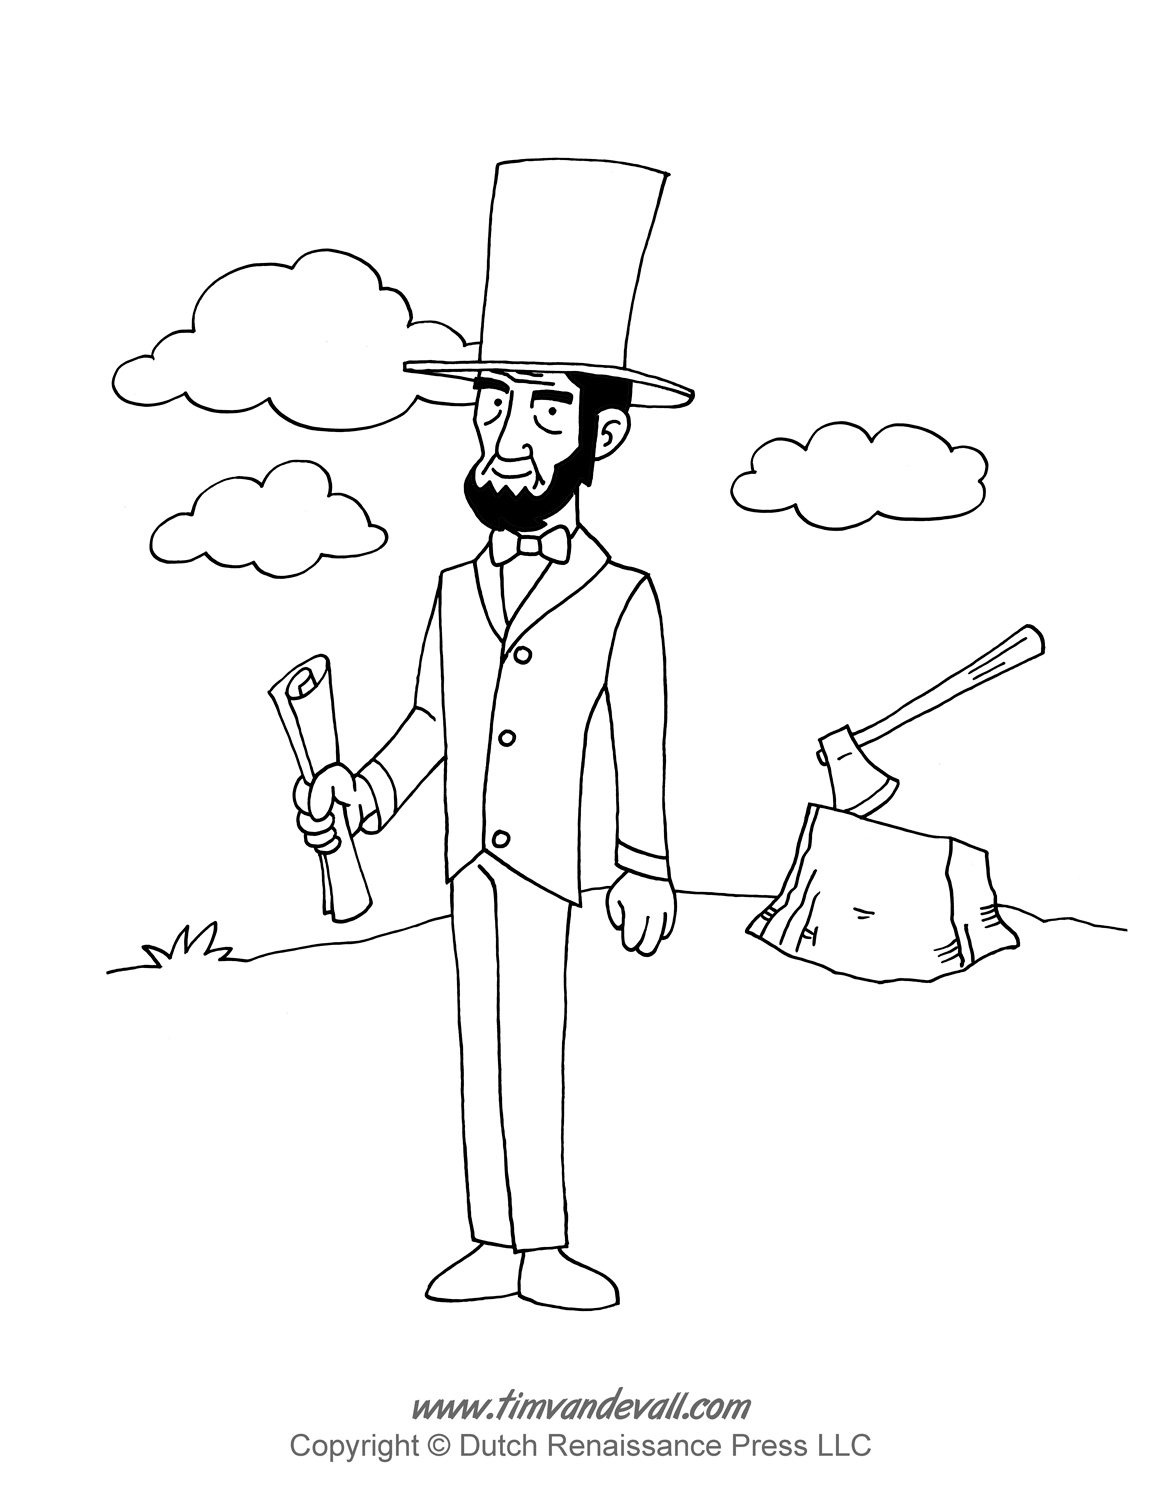 Free Coloring Pages Of S Top Hat